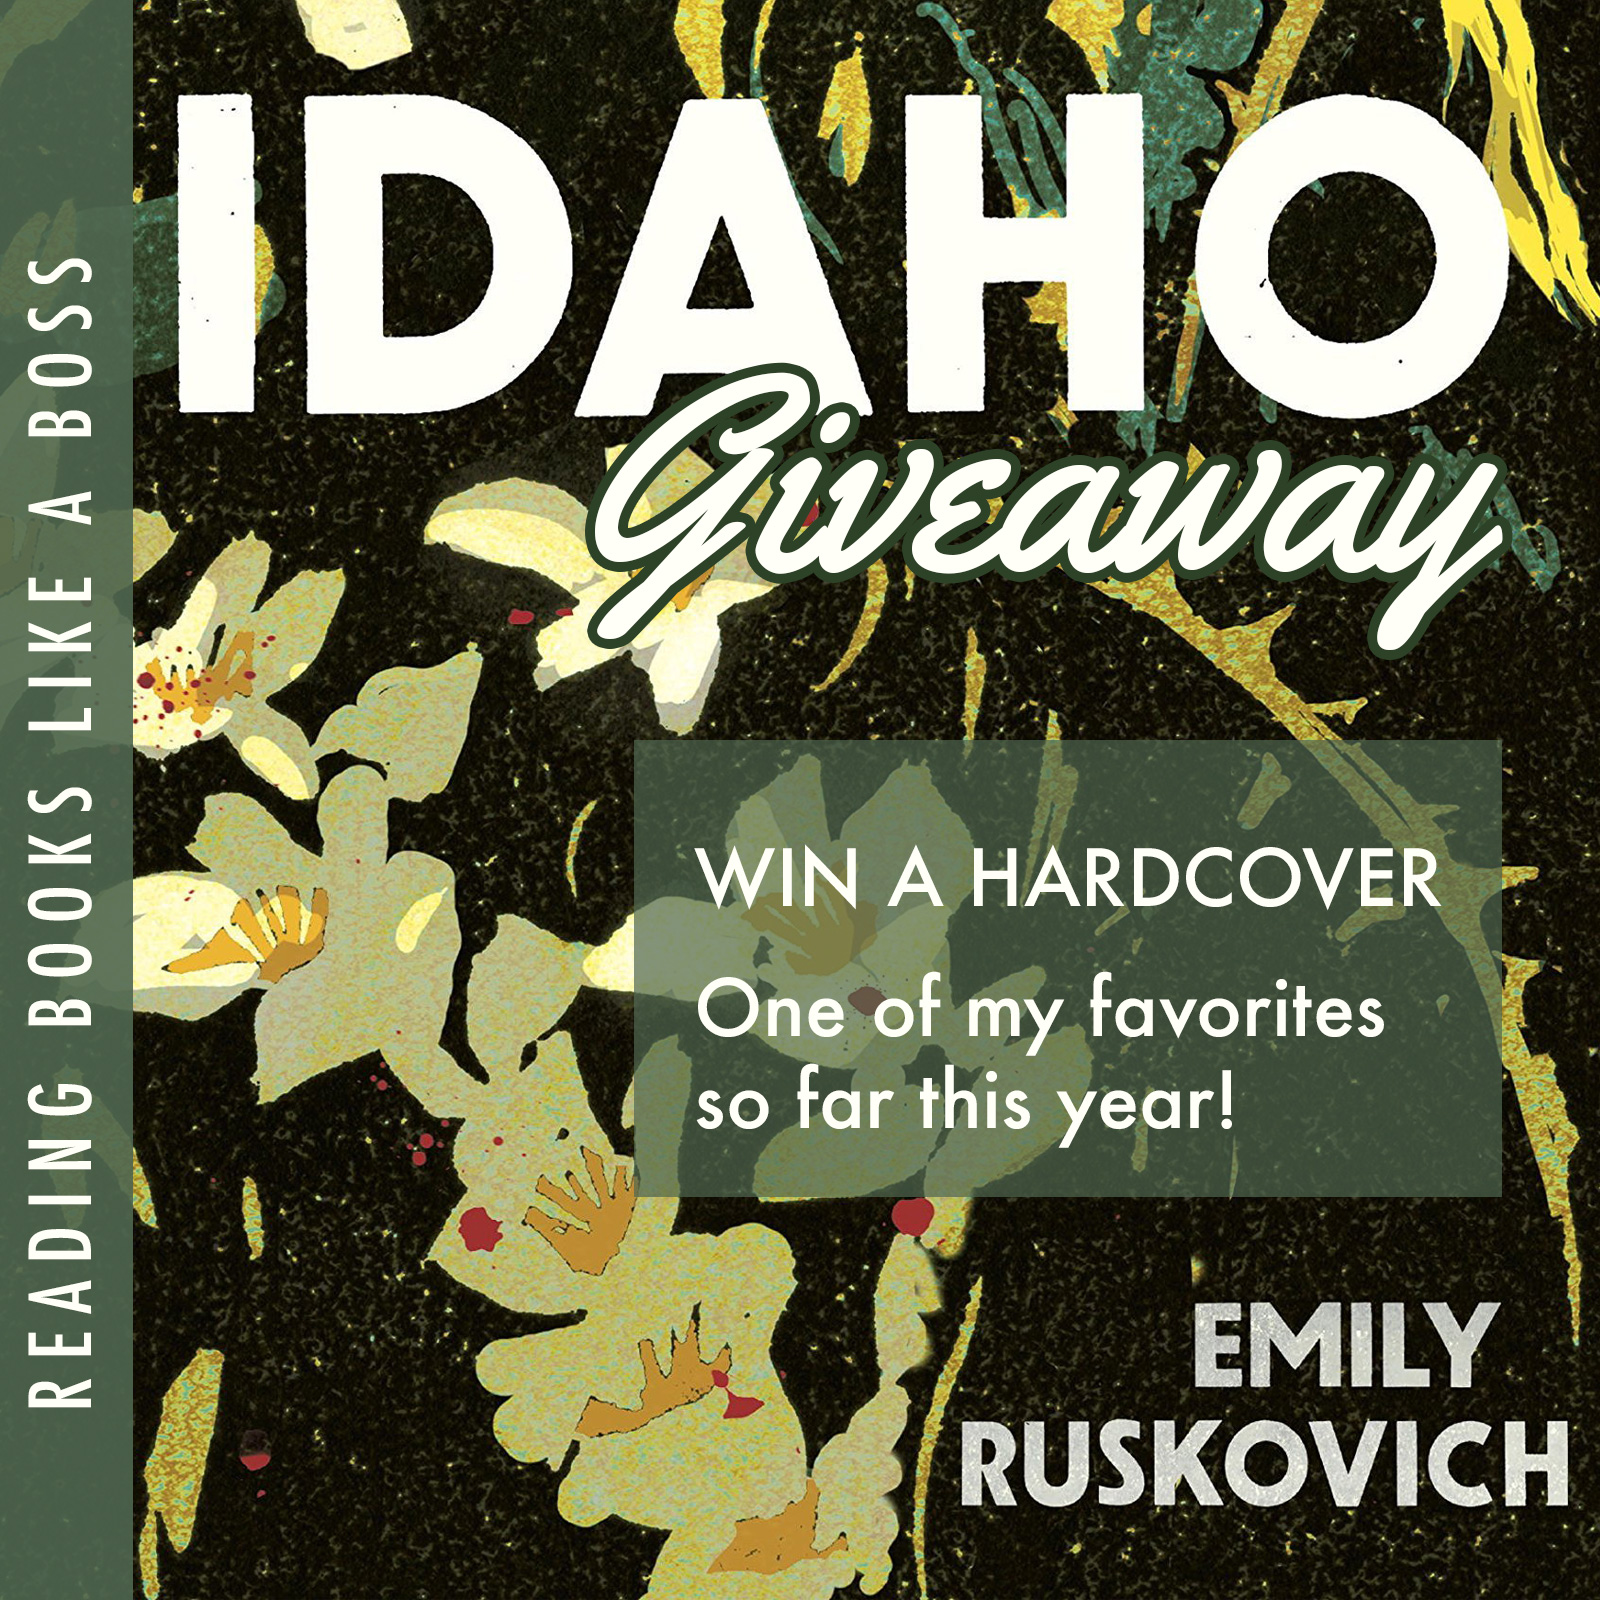 1 Hardcover copy of IDAHO by Emily Ruskovich - Open Internationally